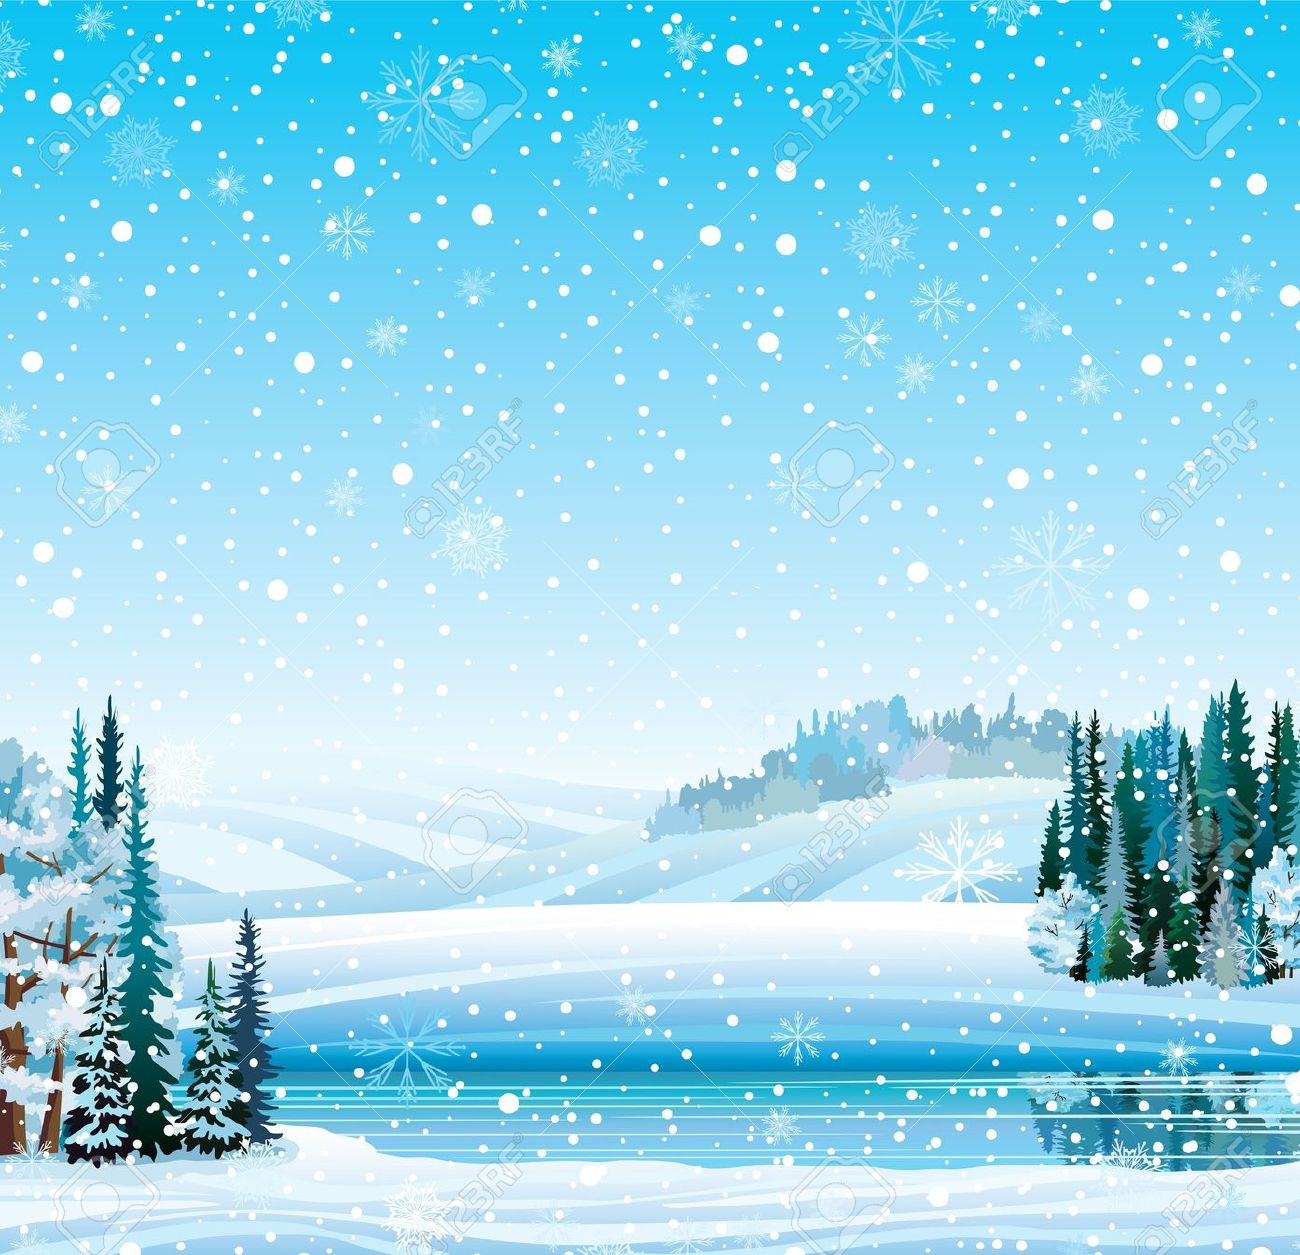 Free snowy cliparts download. Winter clipart landscape